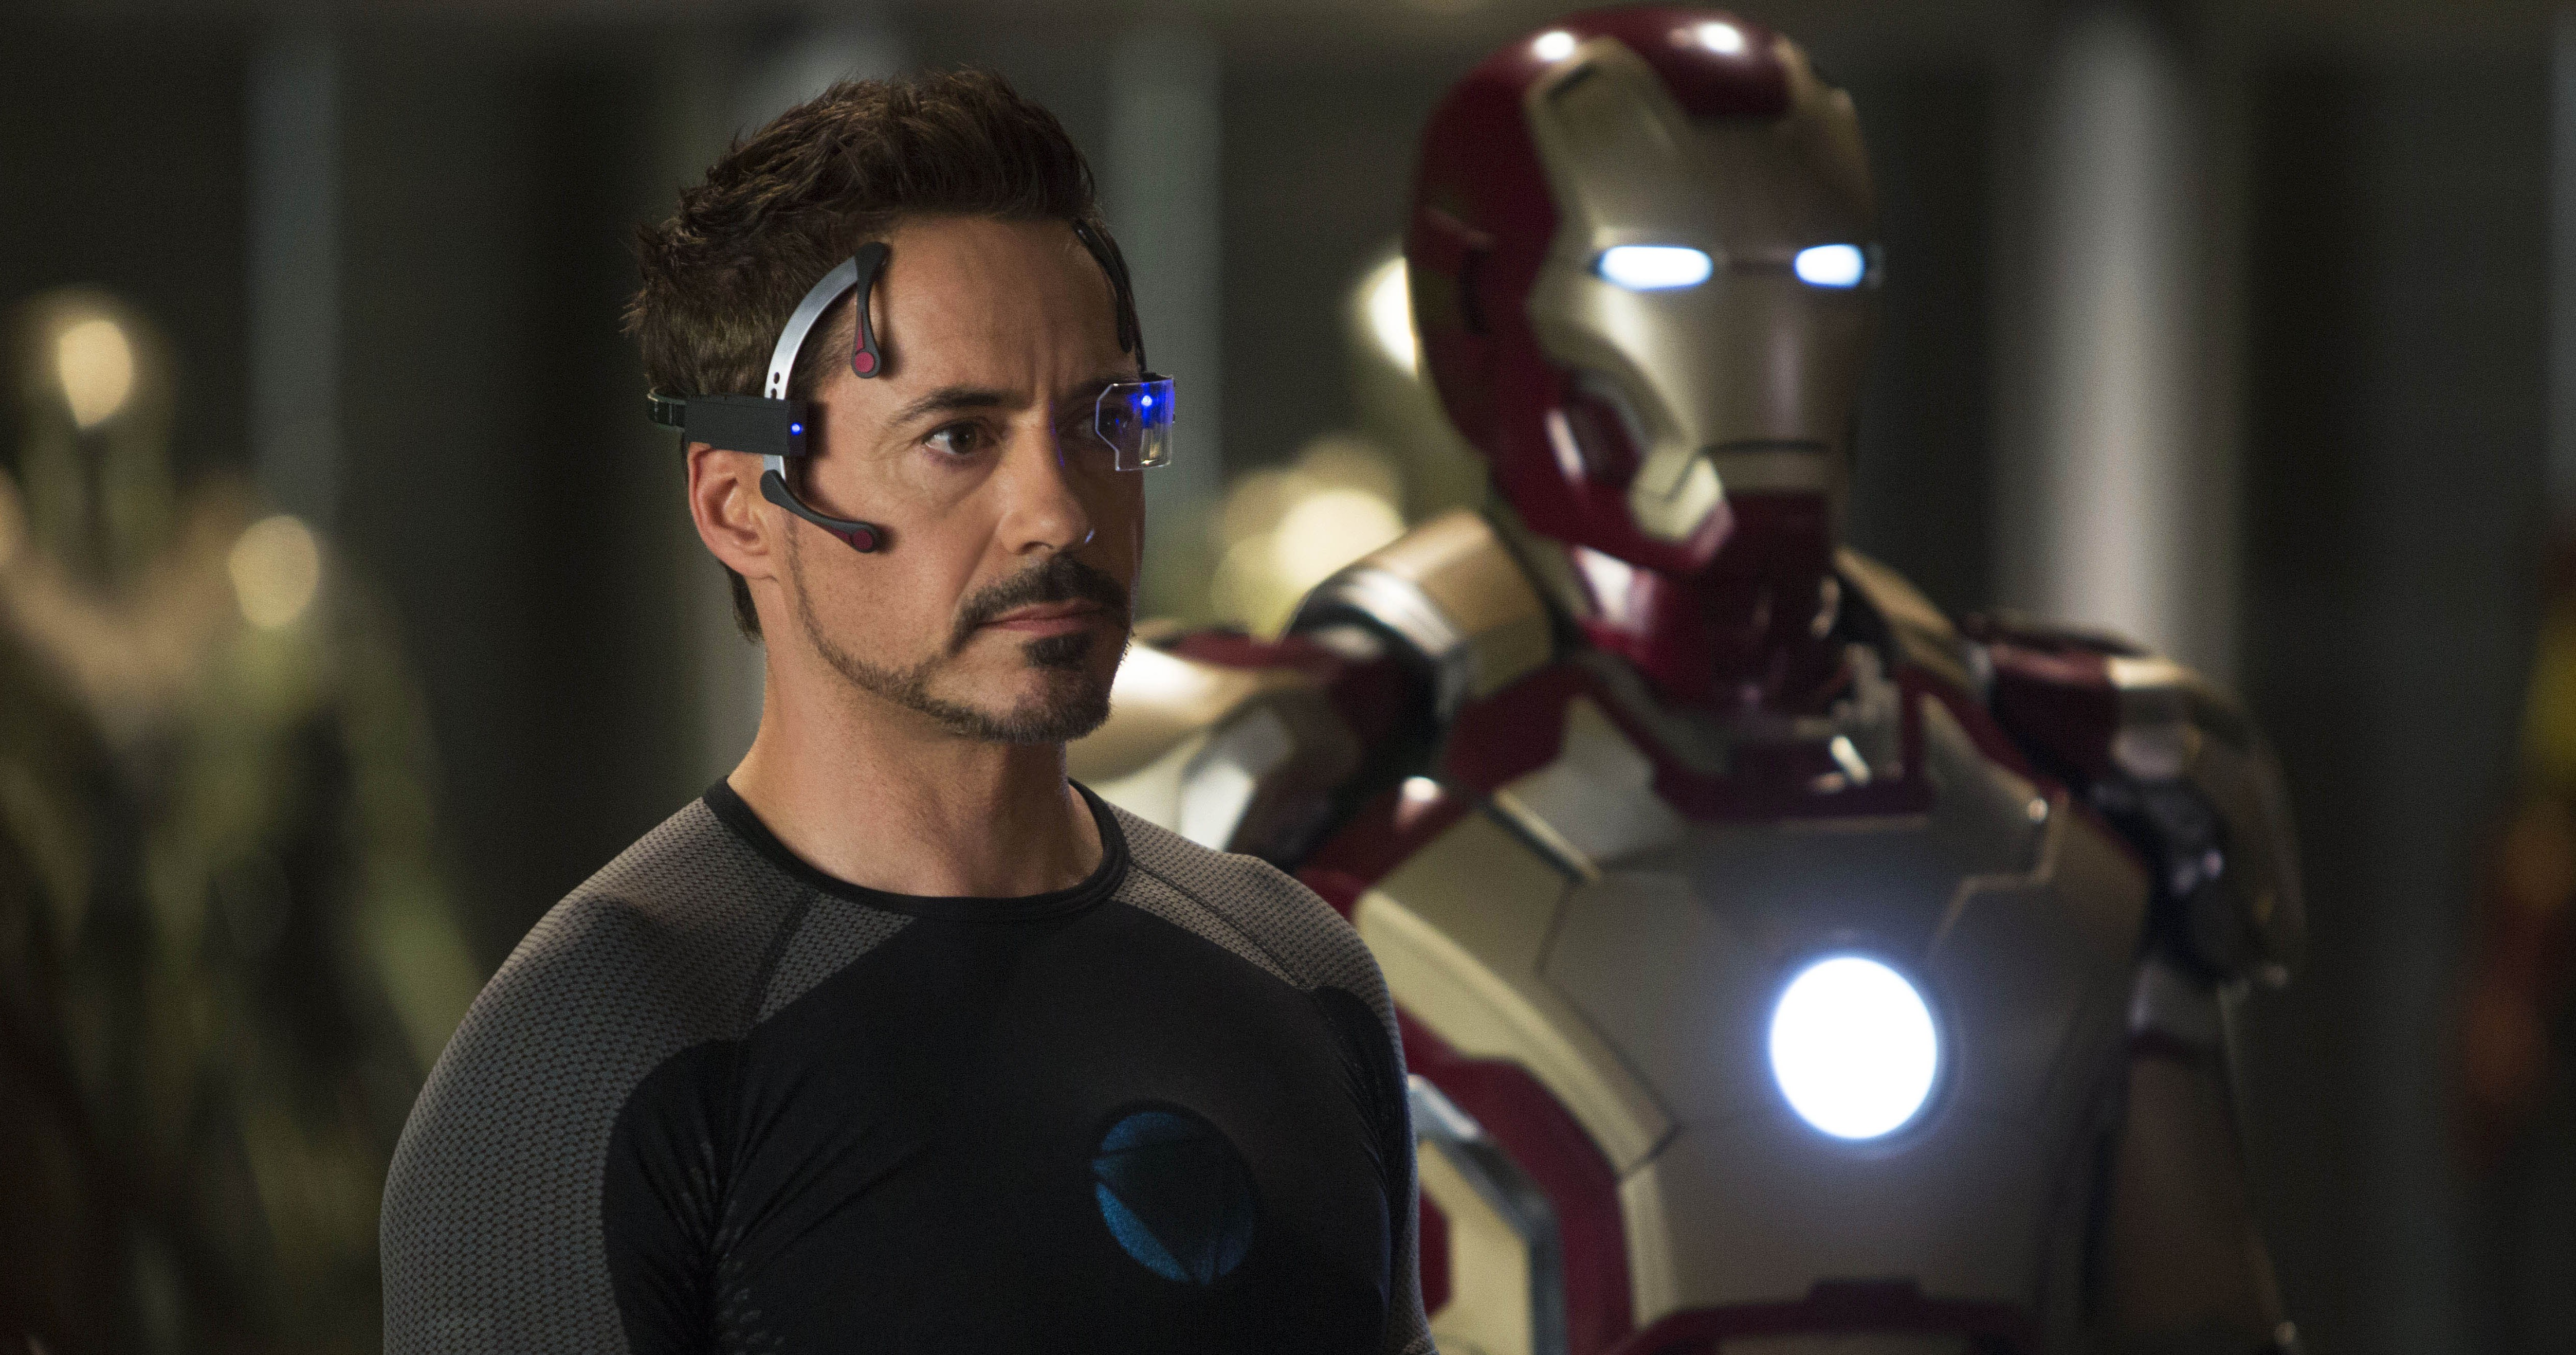 Iron Man makes way for Iron Lady as premiere is postponed for Thatcher funeral